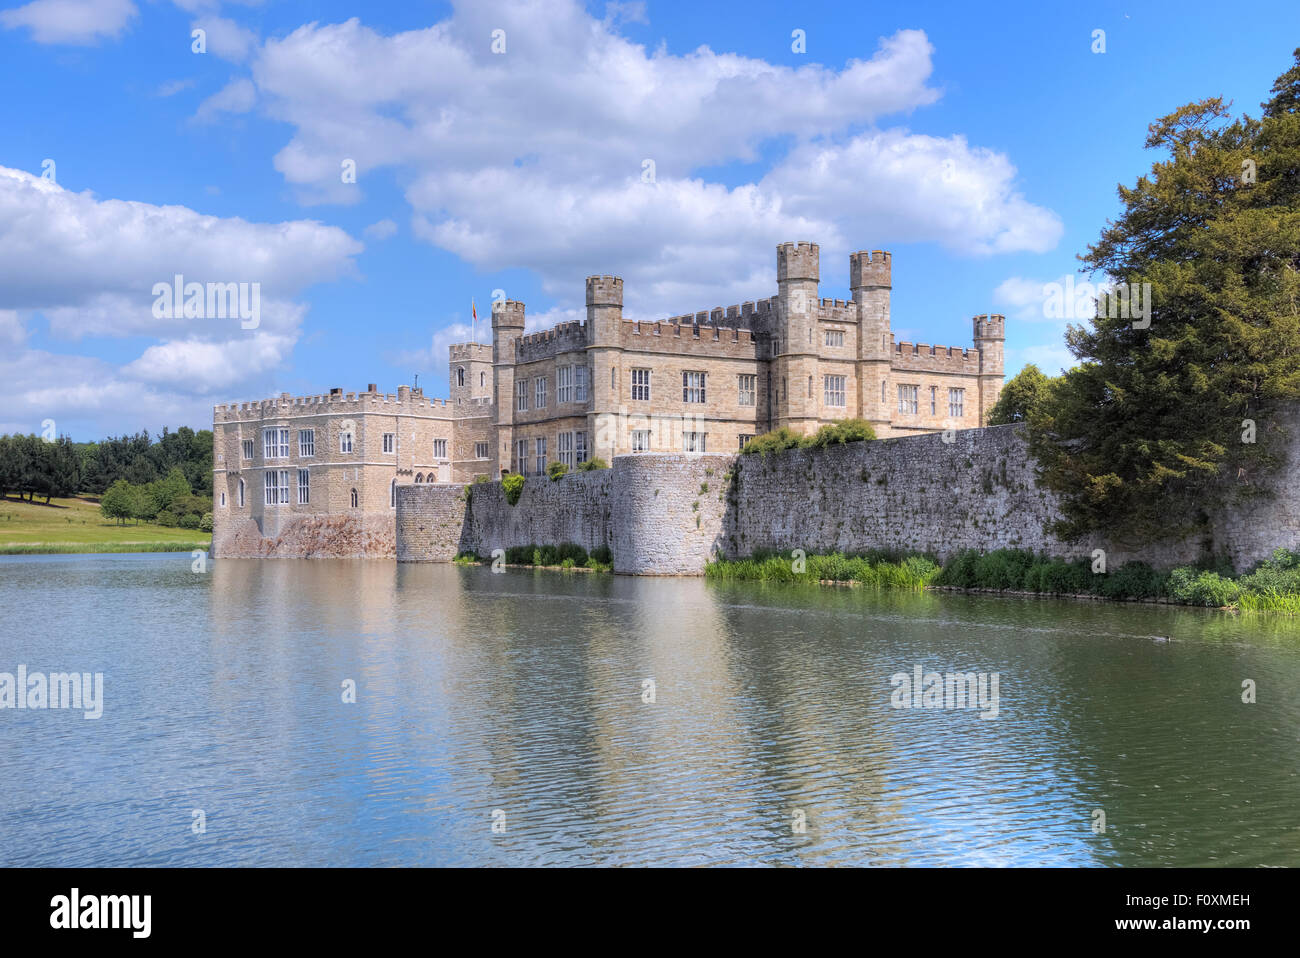 Leeds Castle, Maidstone, Kent, England, United Kingdom - Stock Image